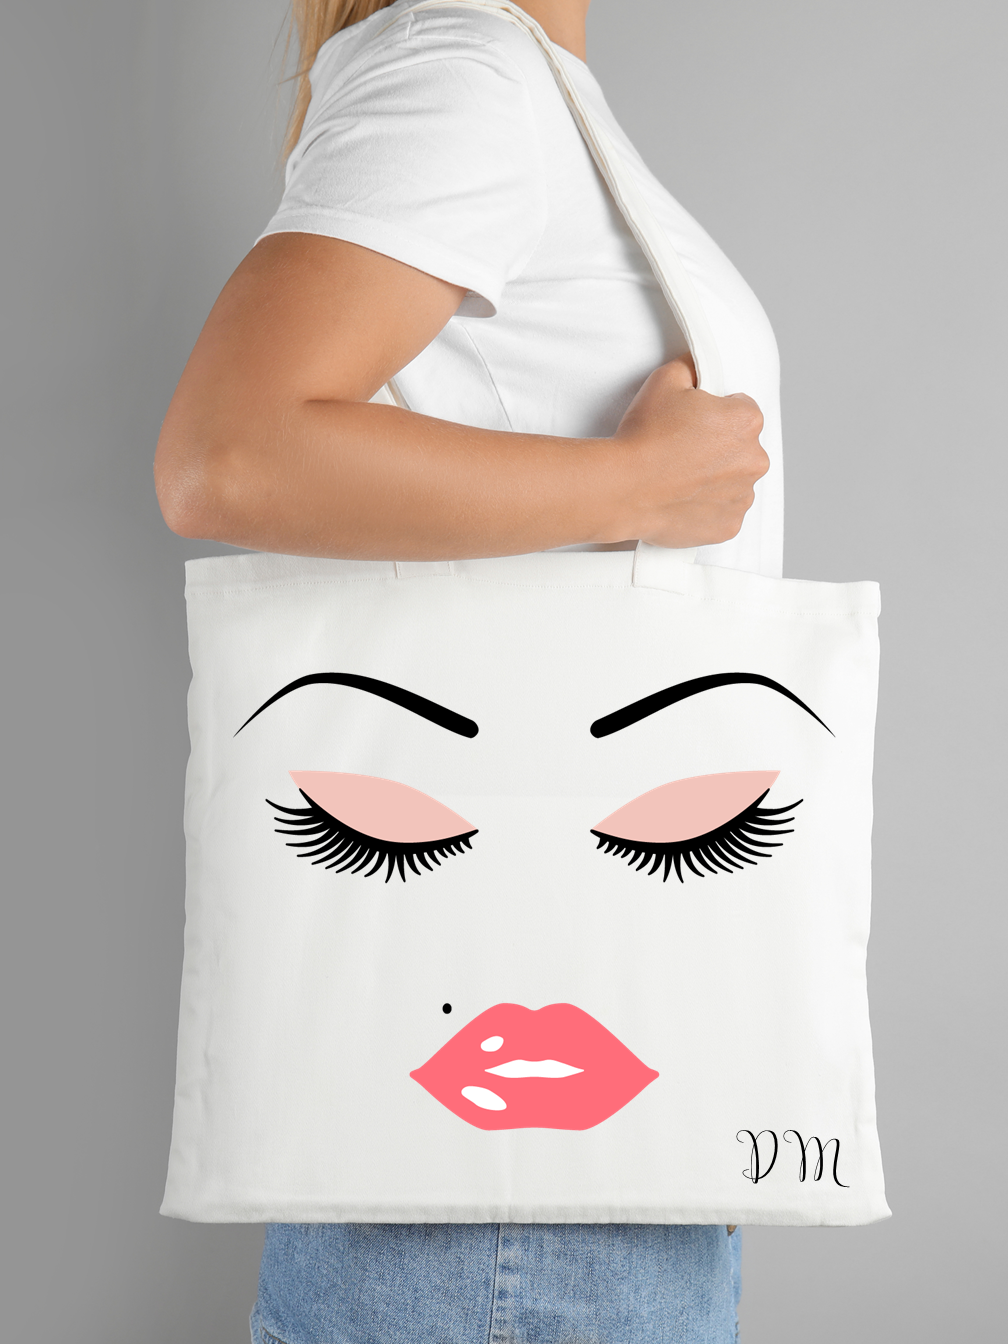 Lashes and Pink Lips Personalised Canvas Tote Bag - PureEssenceGreetings